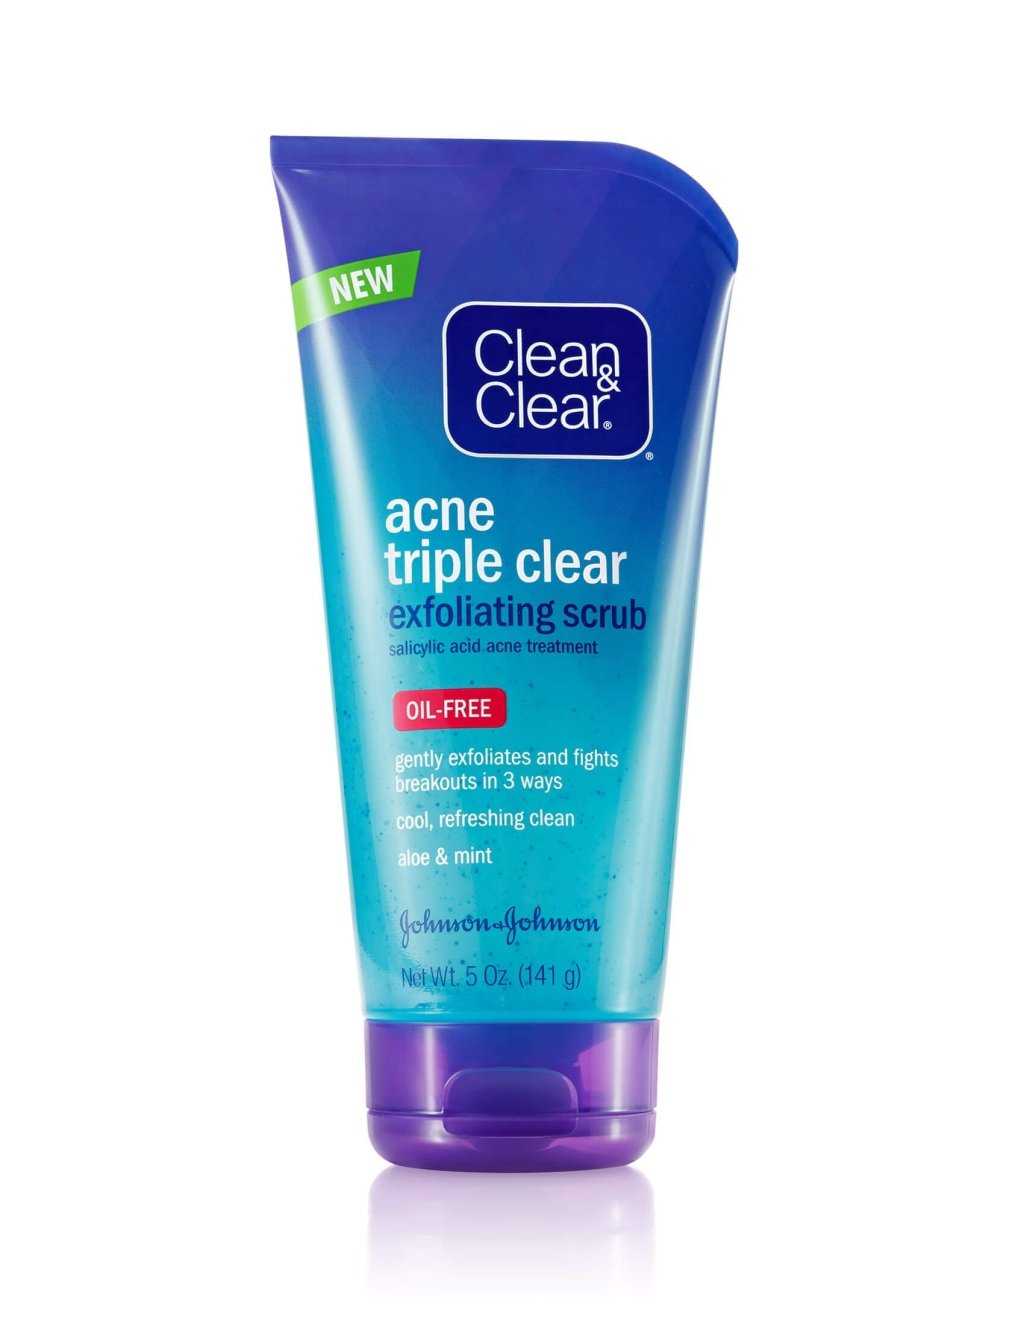 Clear and clean products